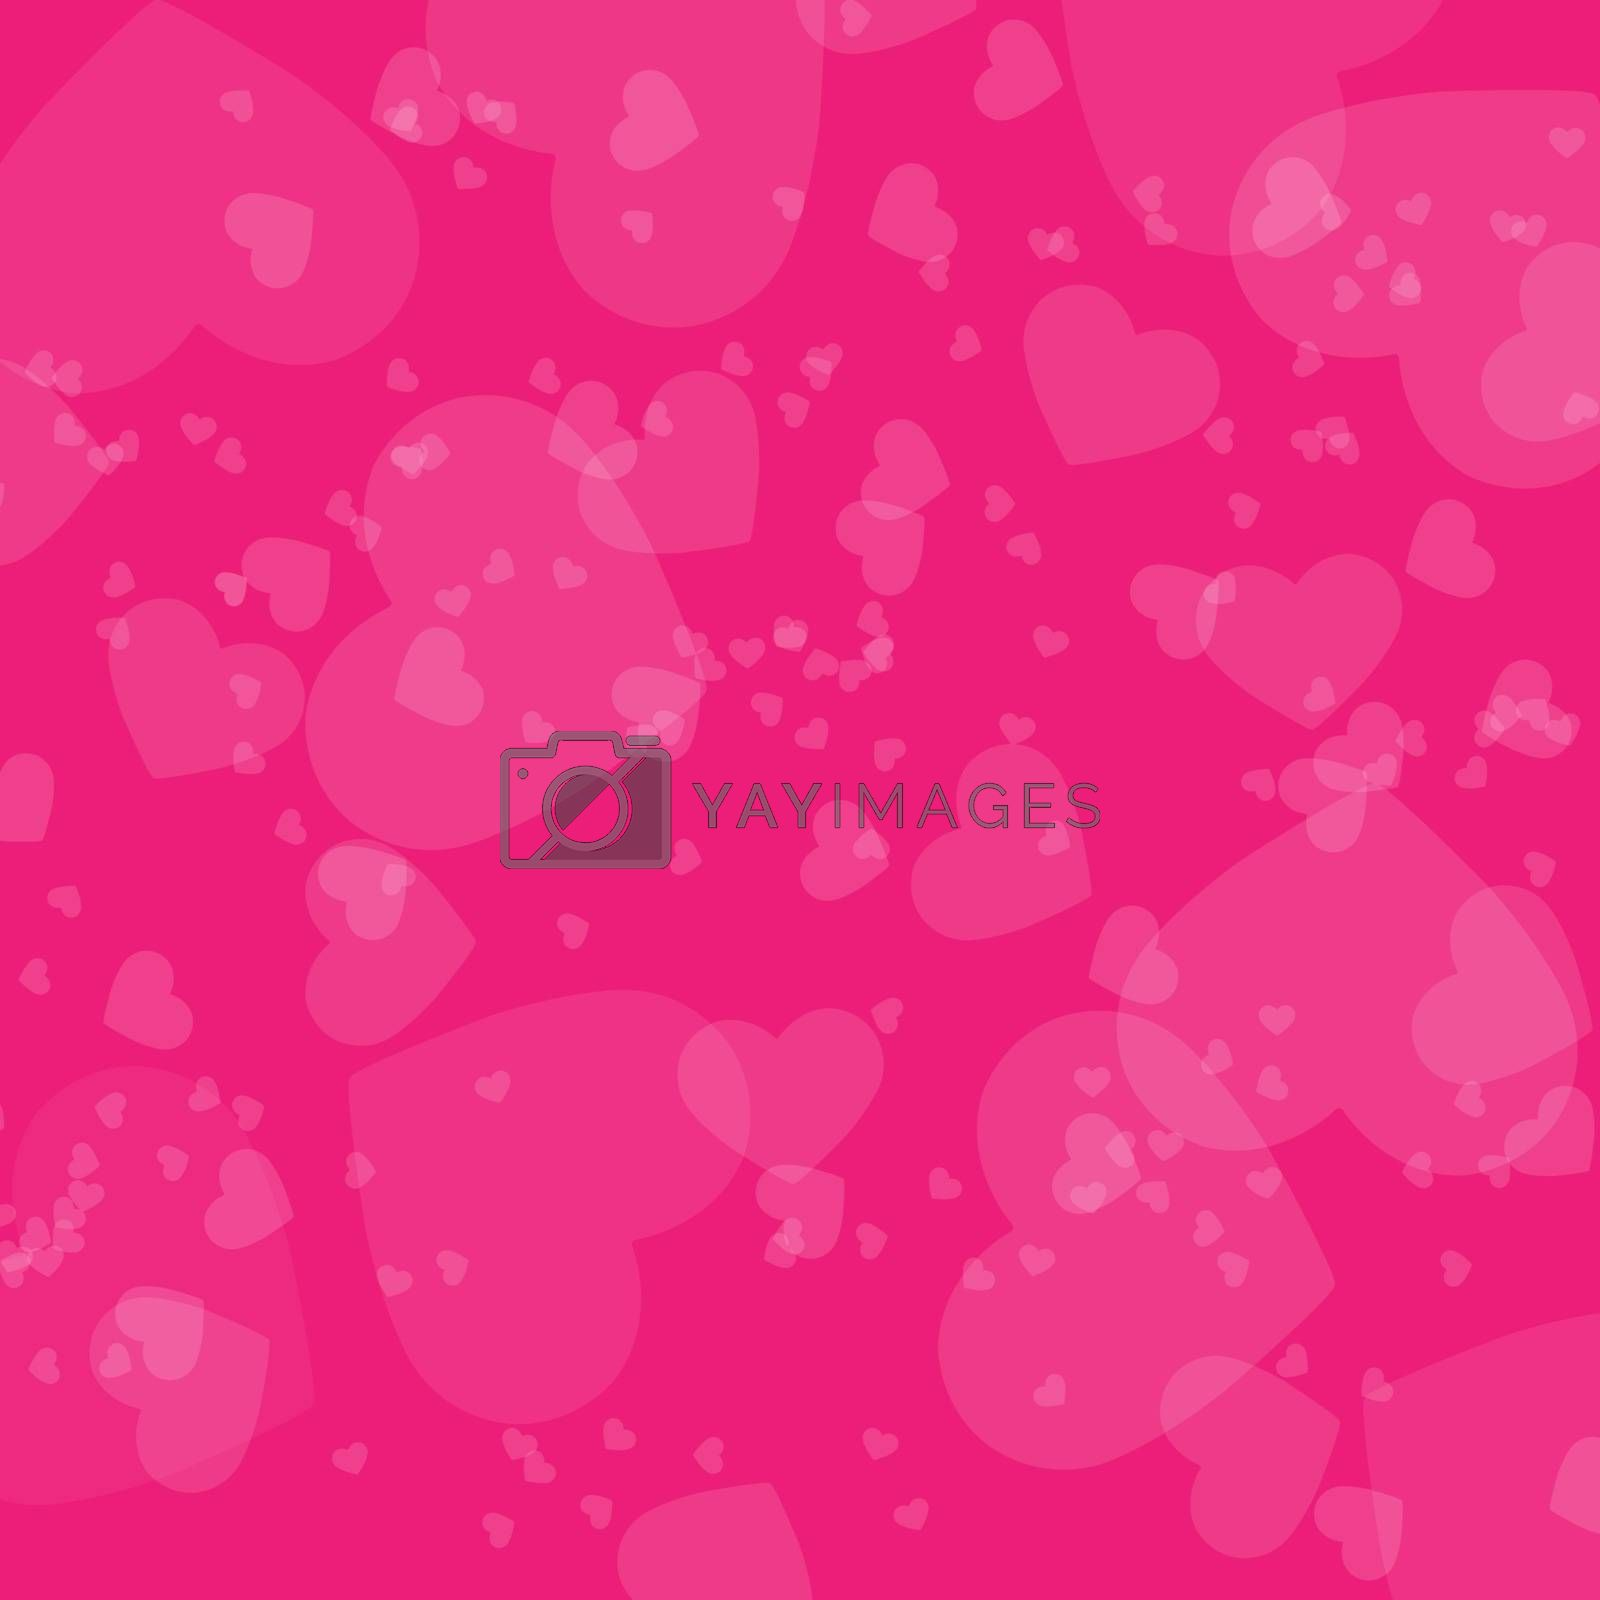 Colorful colorful festive background with hearts and circles